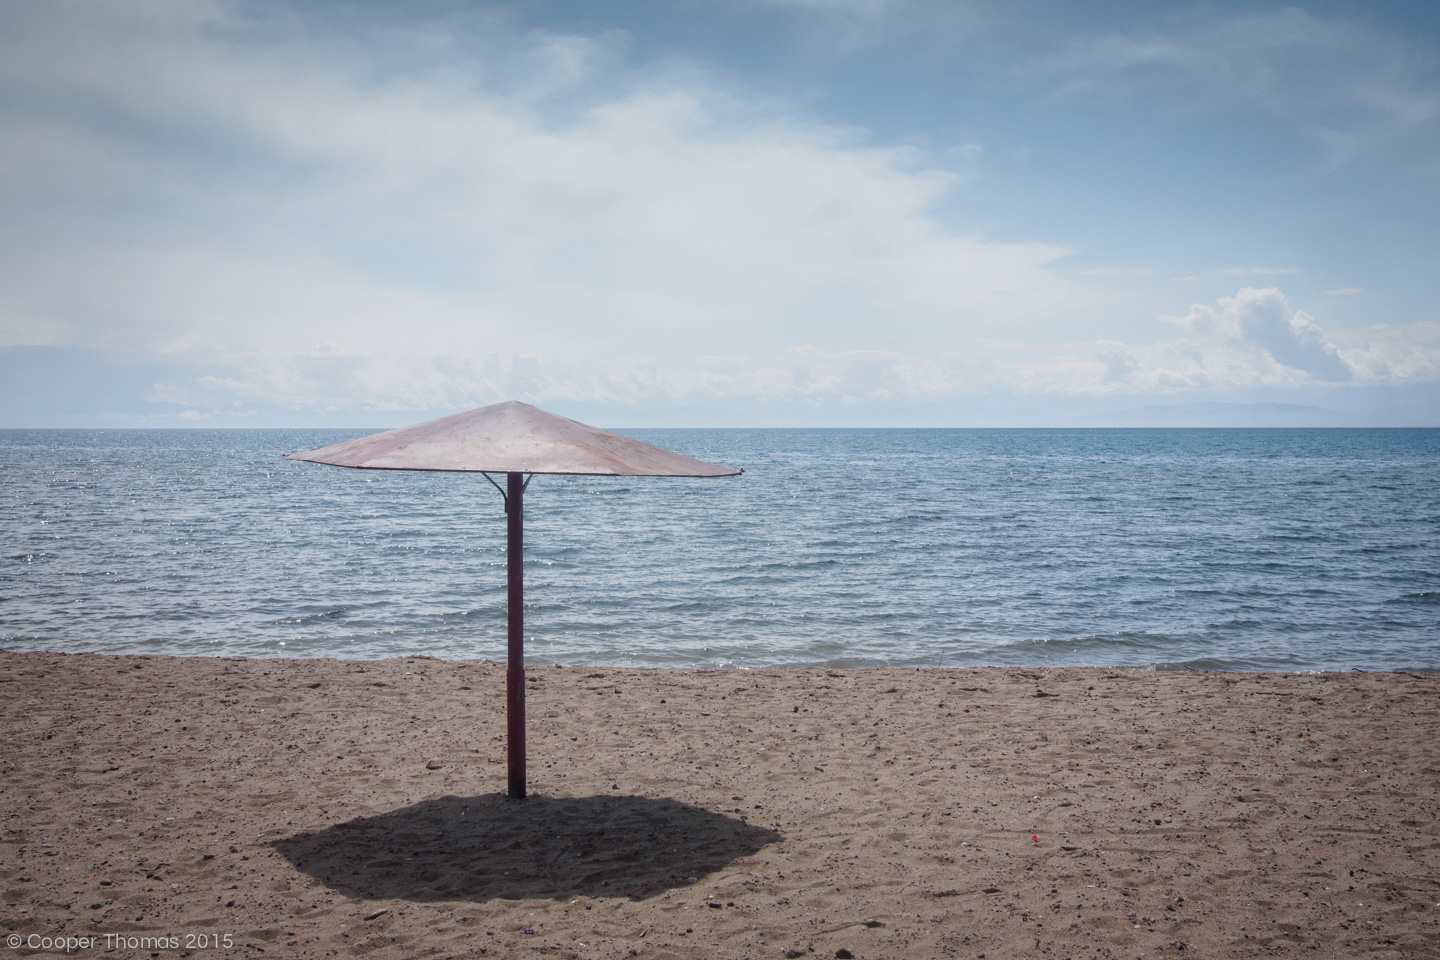 Unoccupied metal umbrella on the beach